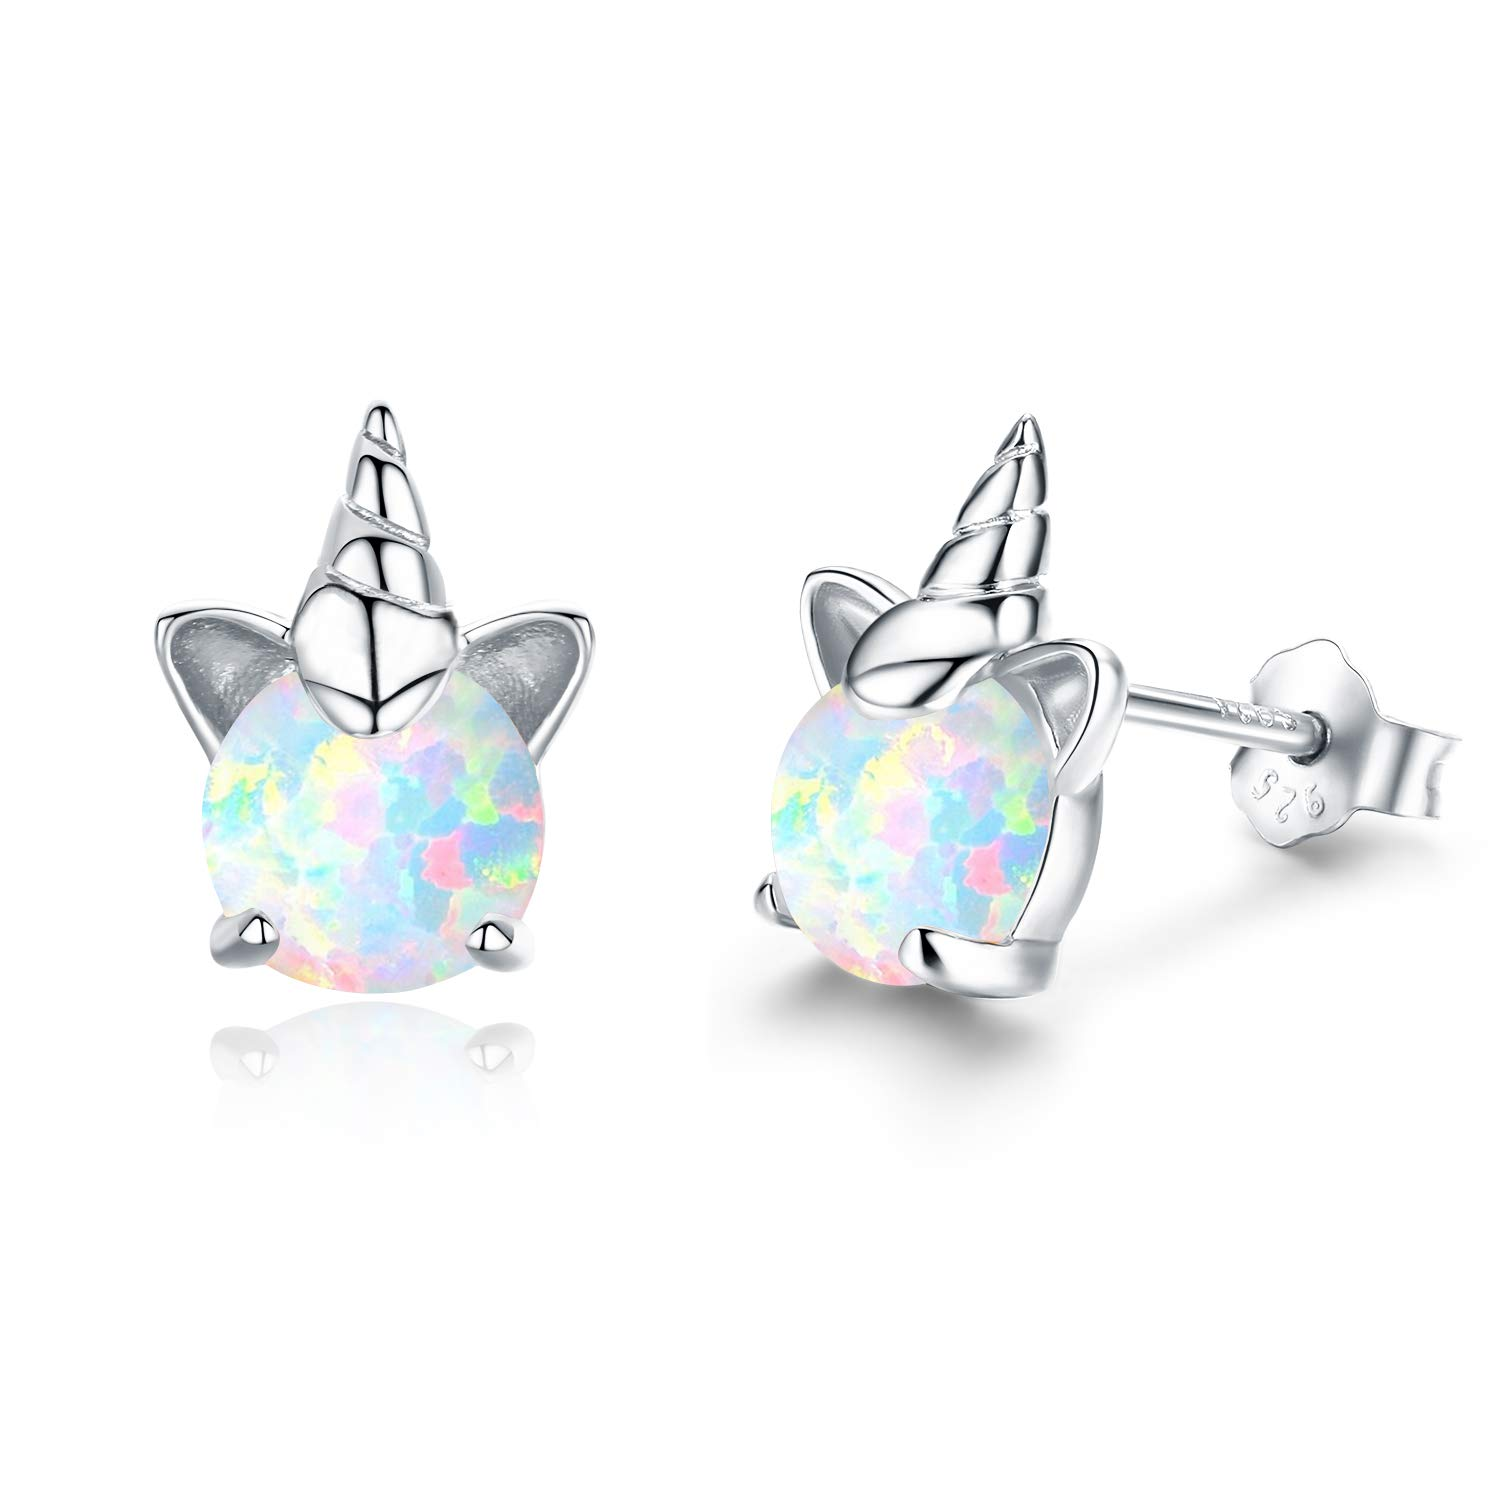 Hypoallergenic Unicorn Earrings S925 Sterling Silver Animal Earrings Synthetic Opal Stud Cute Birthday Gift for Her Stocking Stuffers(A) by PRAYMOS